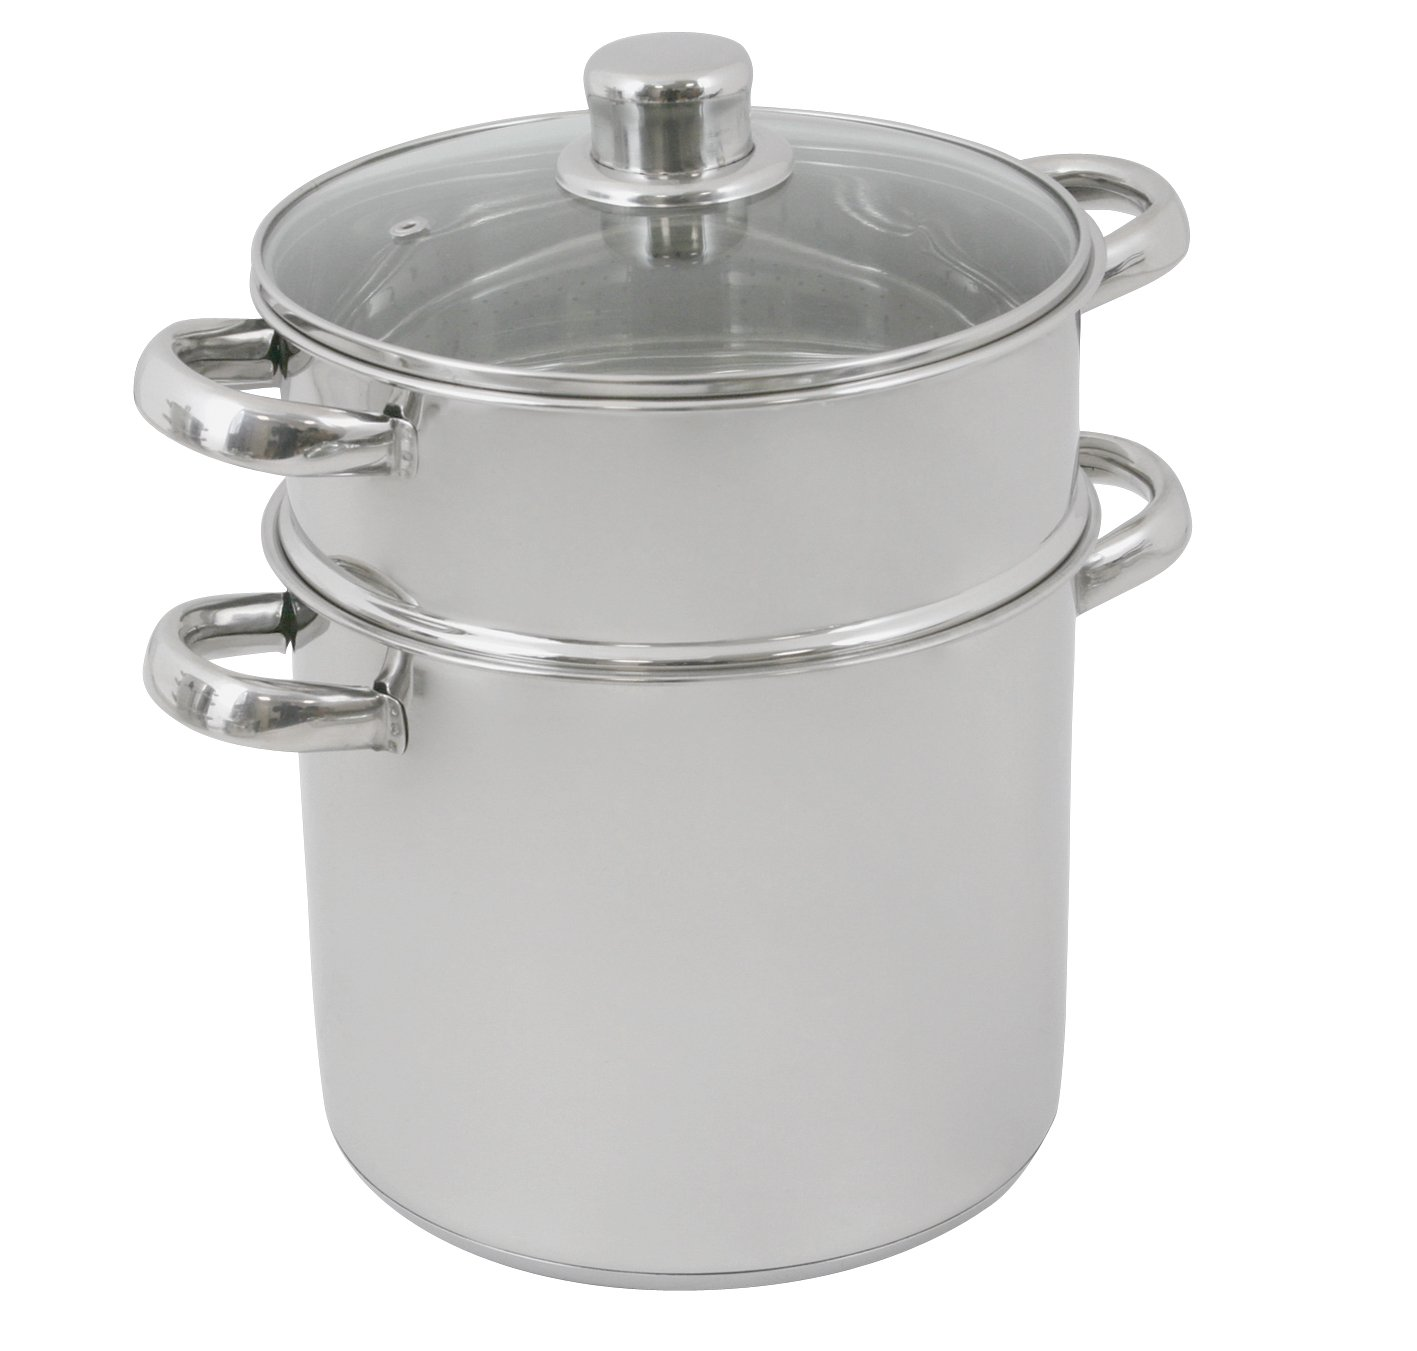 Crealys 502365 Couscous Cooker Stainless Steel with Glass Lid 12L Diameter 24 cm Olympe